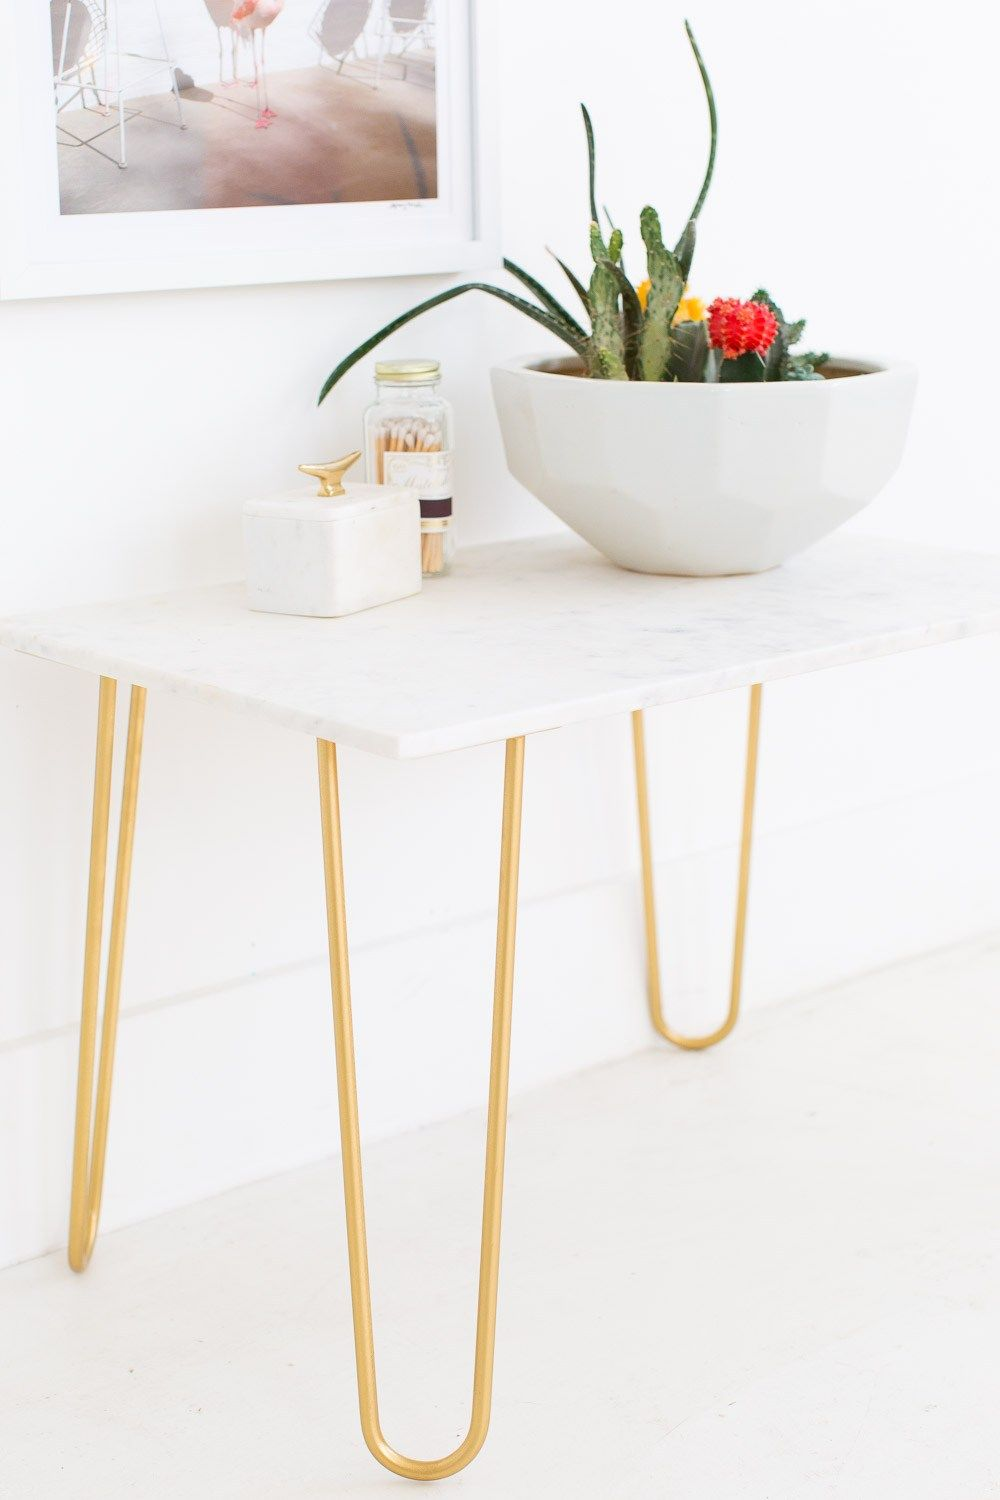 diy marble and gold accent table marbles sugaring side sugar cloth home decor ideas patio umbrella tiled garden chairs small plant glass cube coffee decorative aluminum round with